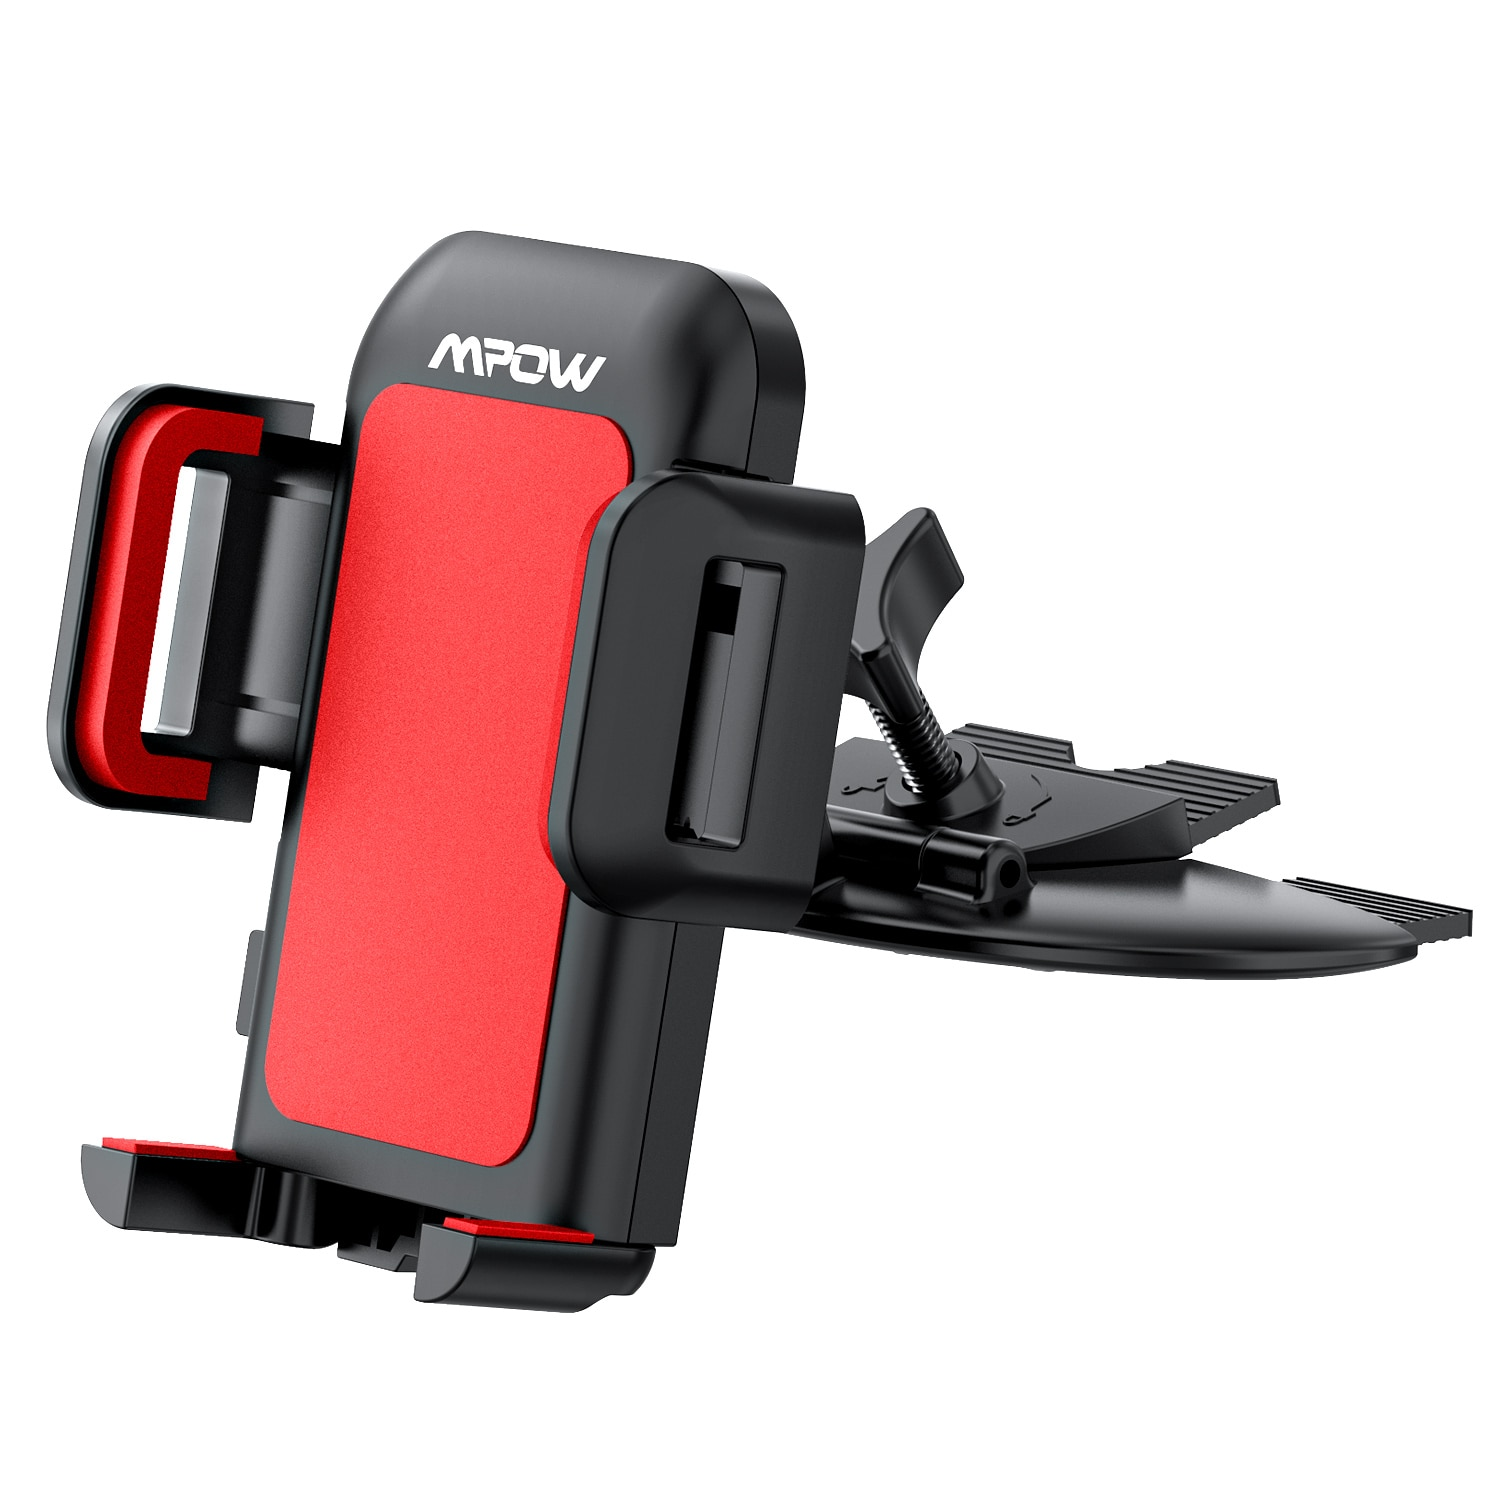 H0d7dc2dc930c45a98dfe949526246809P - Mpow 051 Car Phone Holder CD Slot Car Phone Mount with Three-Side Grip and One-Touch Design for iPhone 12/12Mini/12Pro/12Pro Max